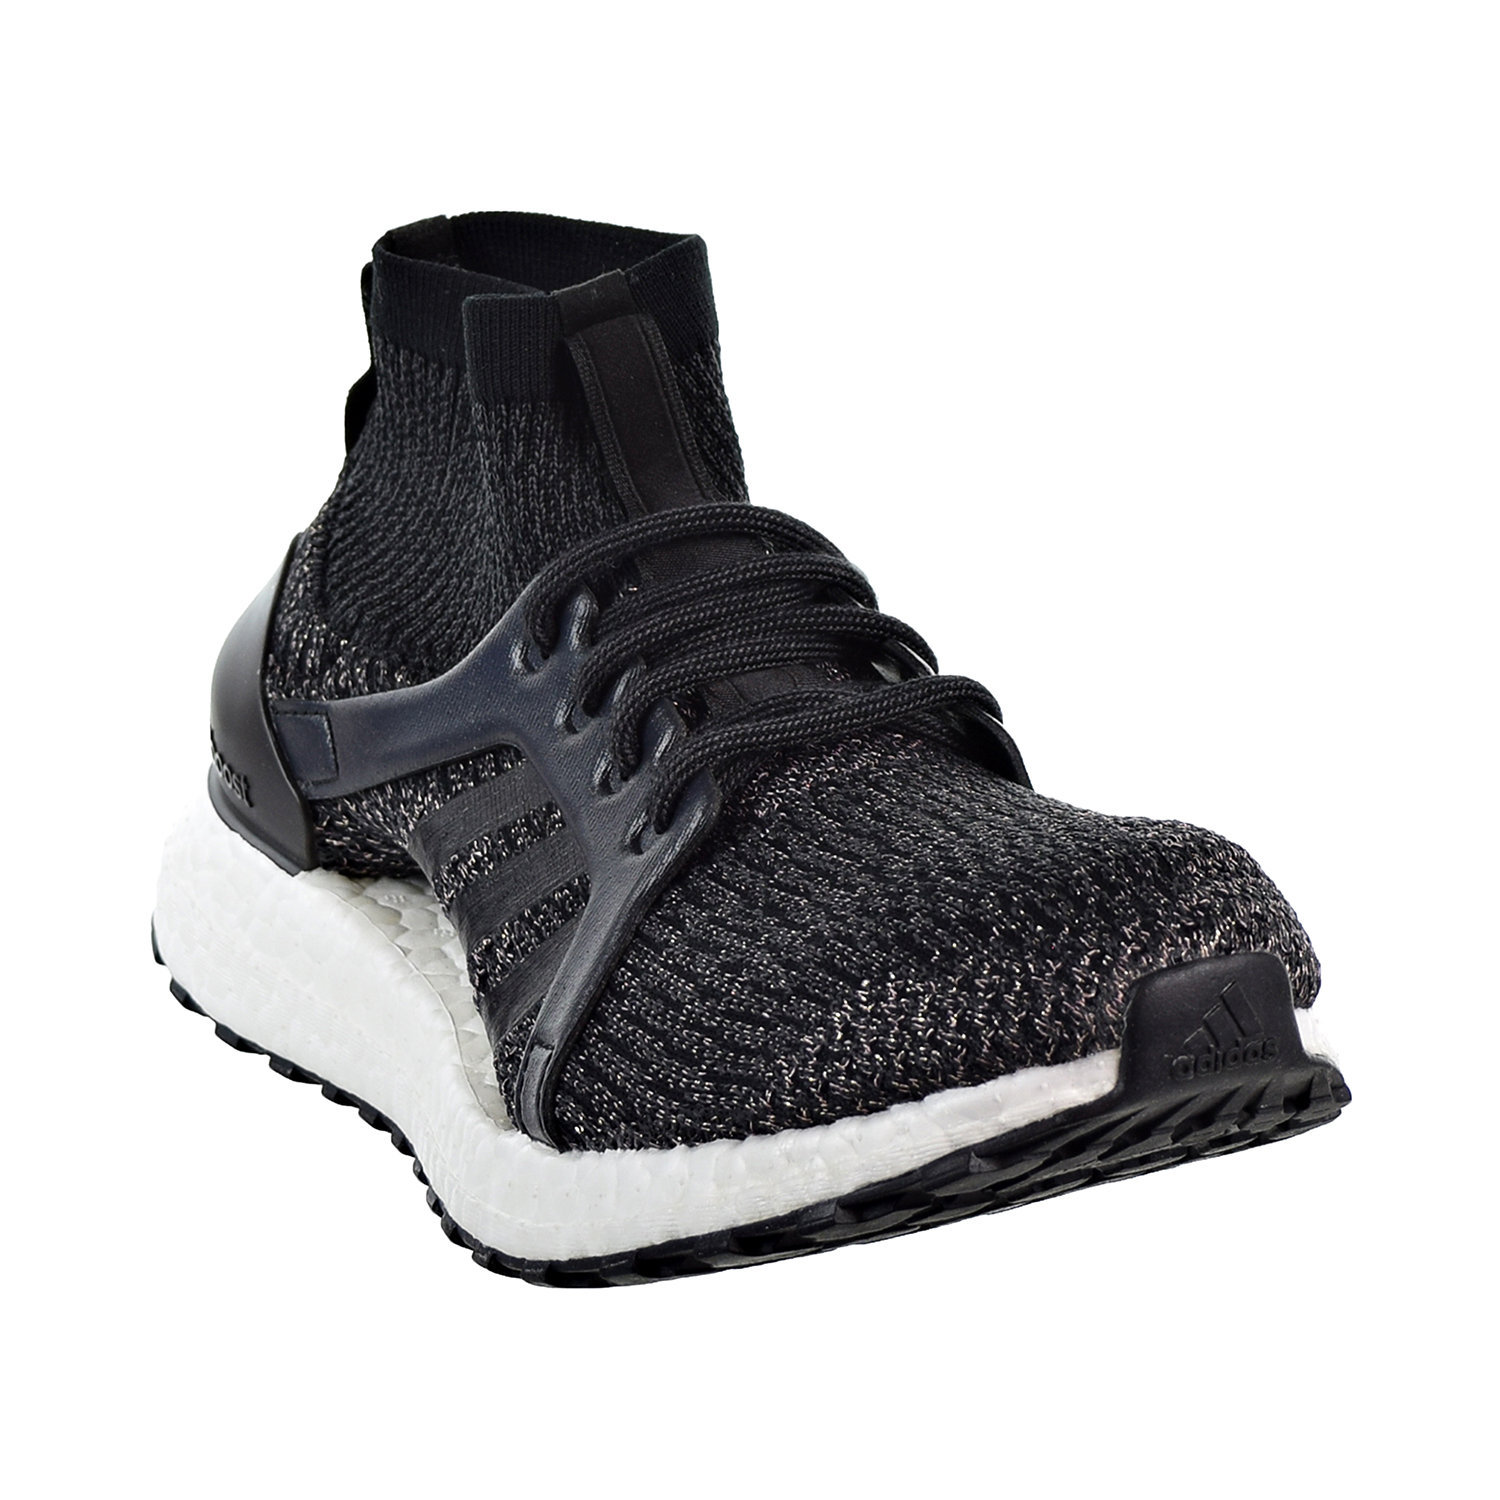 promo code de03b 7772a Adidas Ultraboost X All Terrain Womens Running Shoes Core BlackCarbon  cg3009